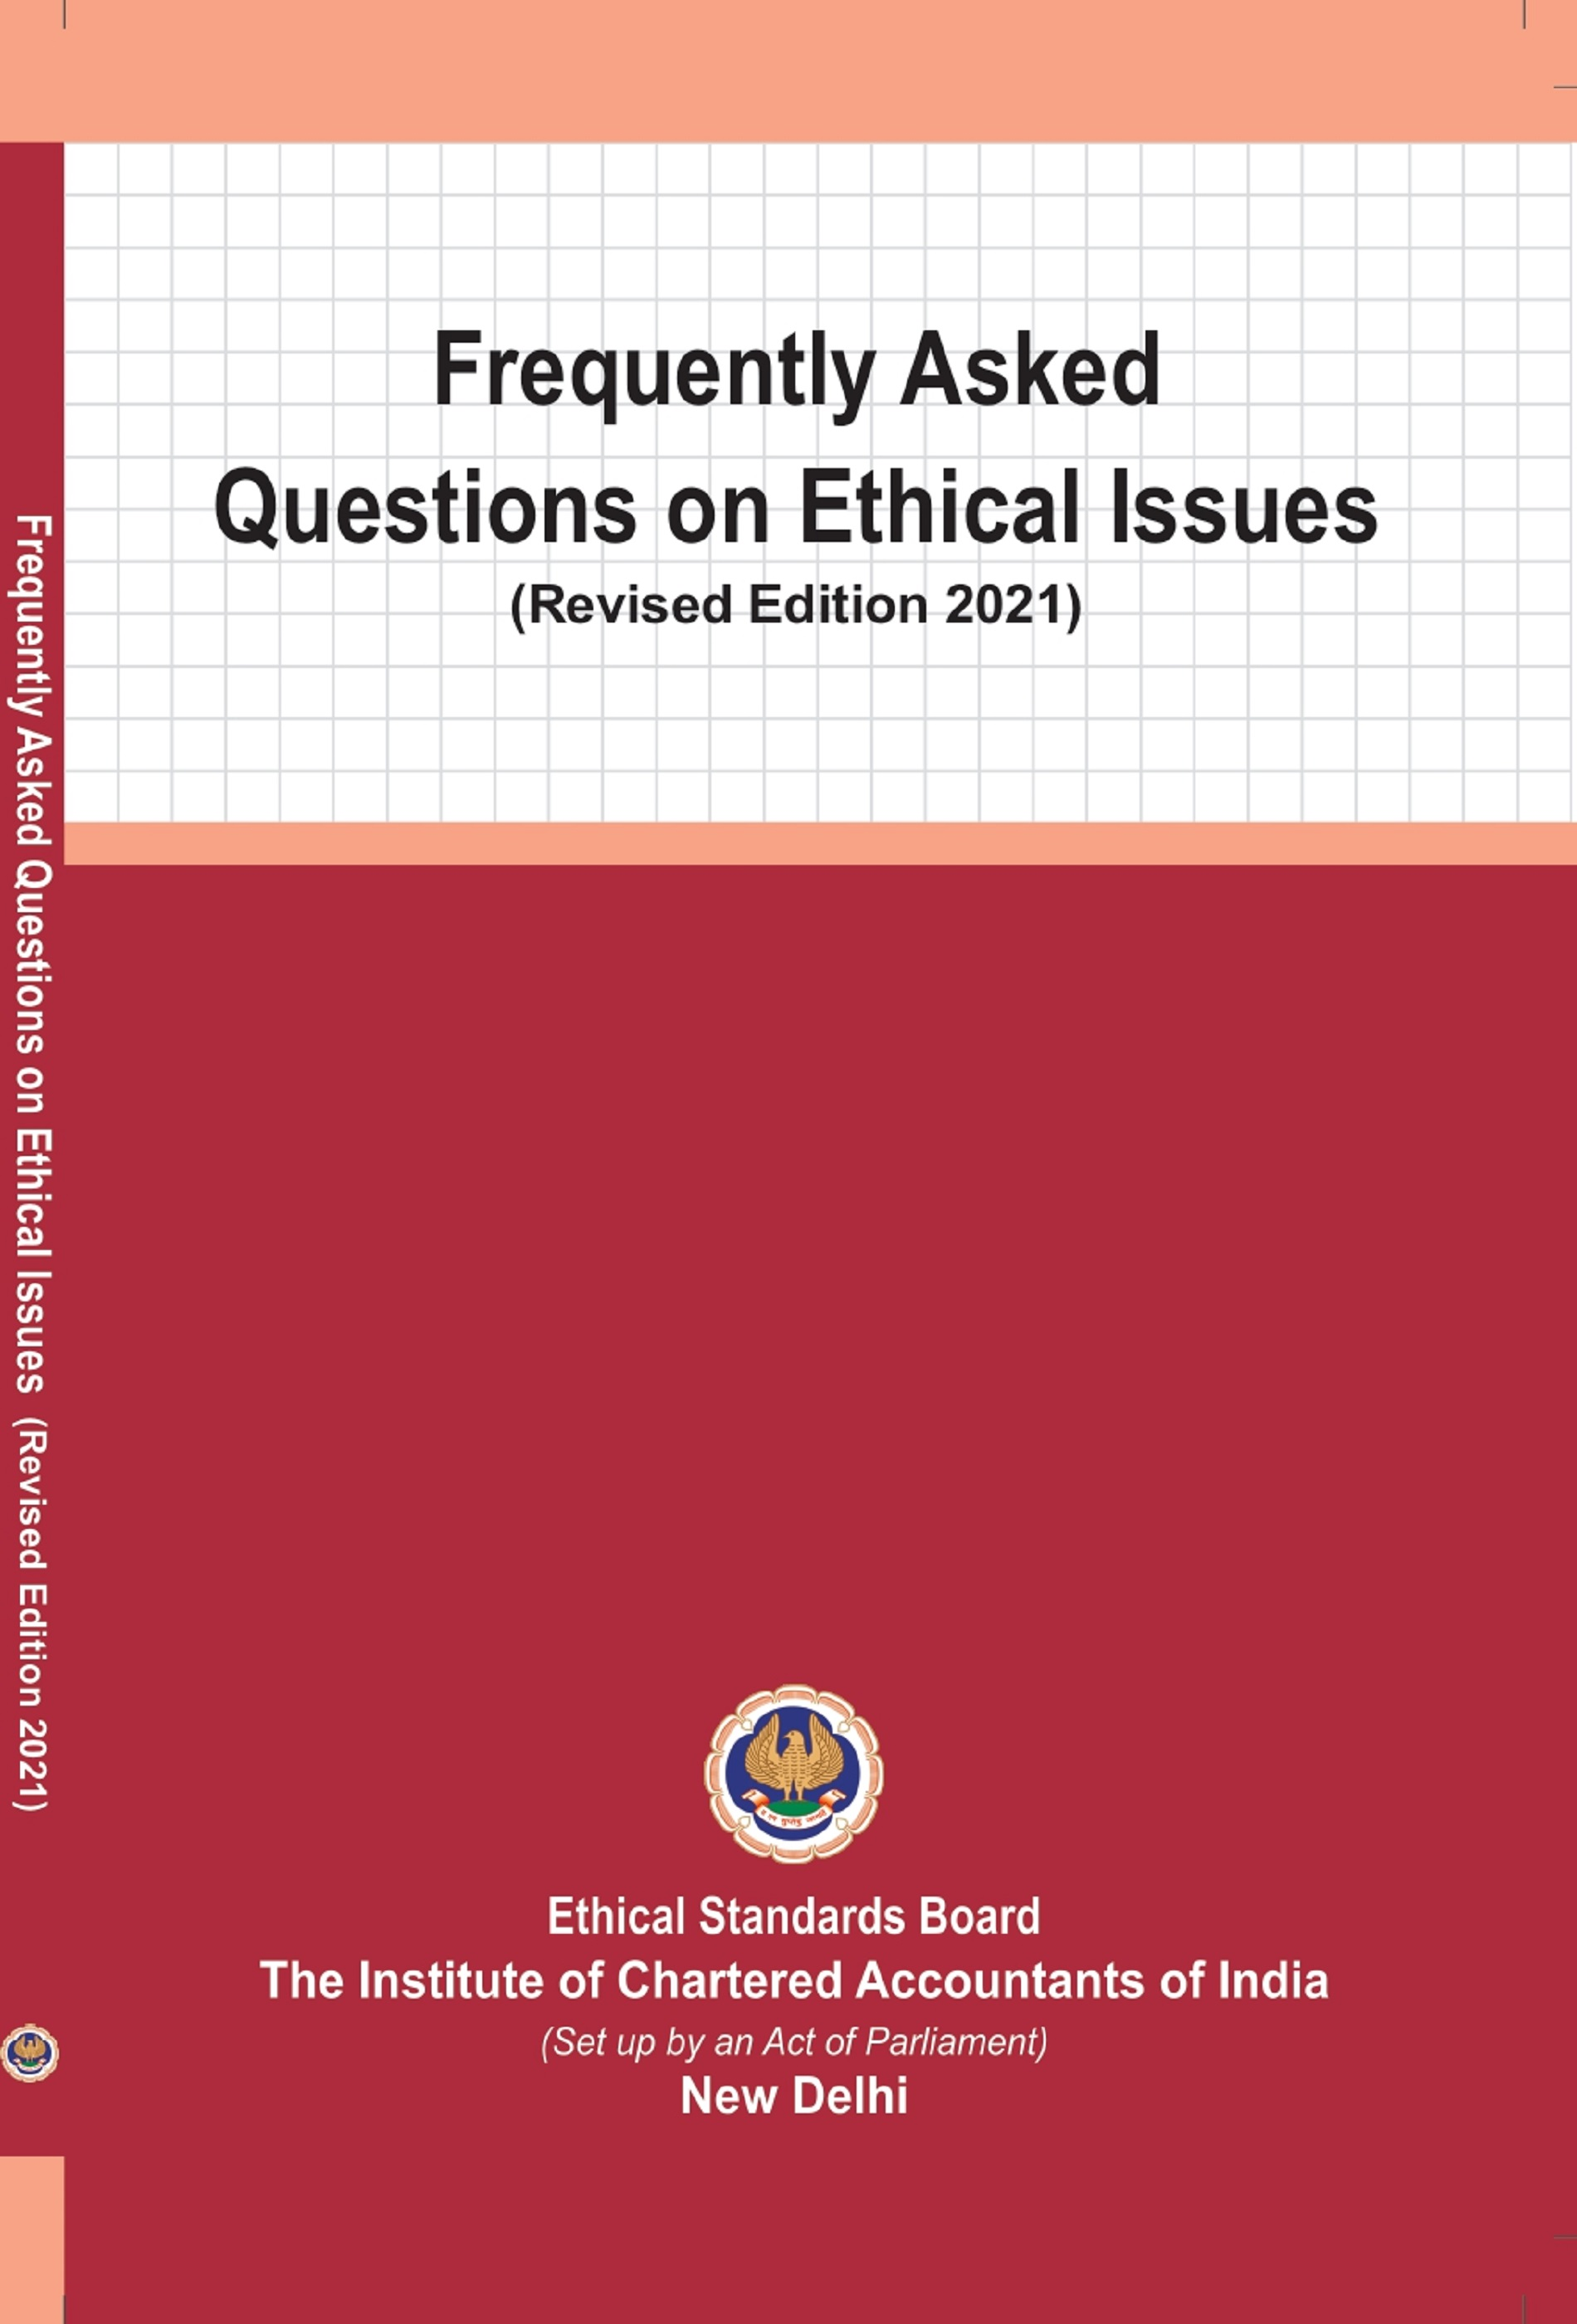 Frequently Asked Questions on Ethical Issues (Revised Edition 2021)